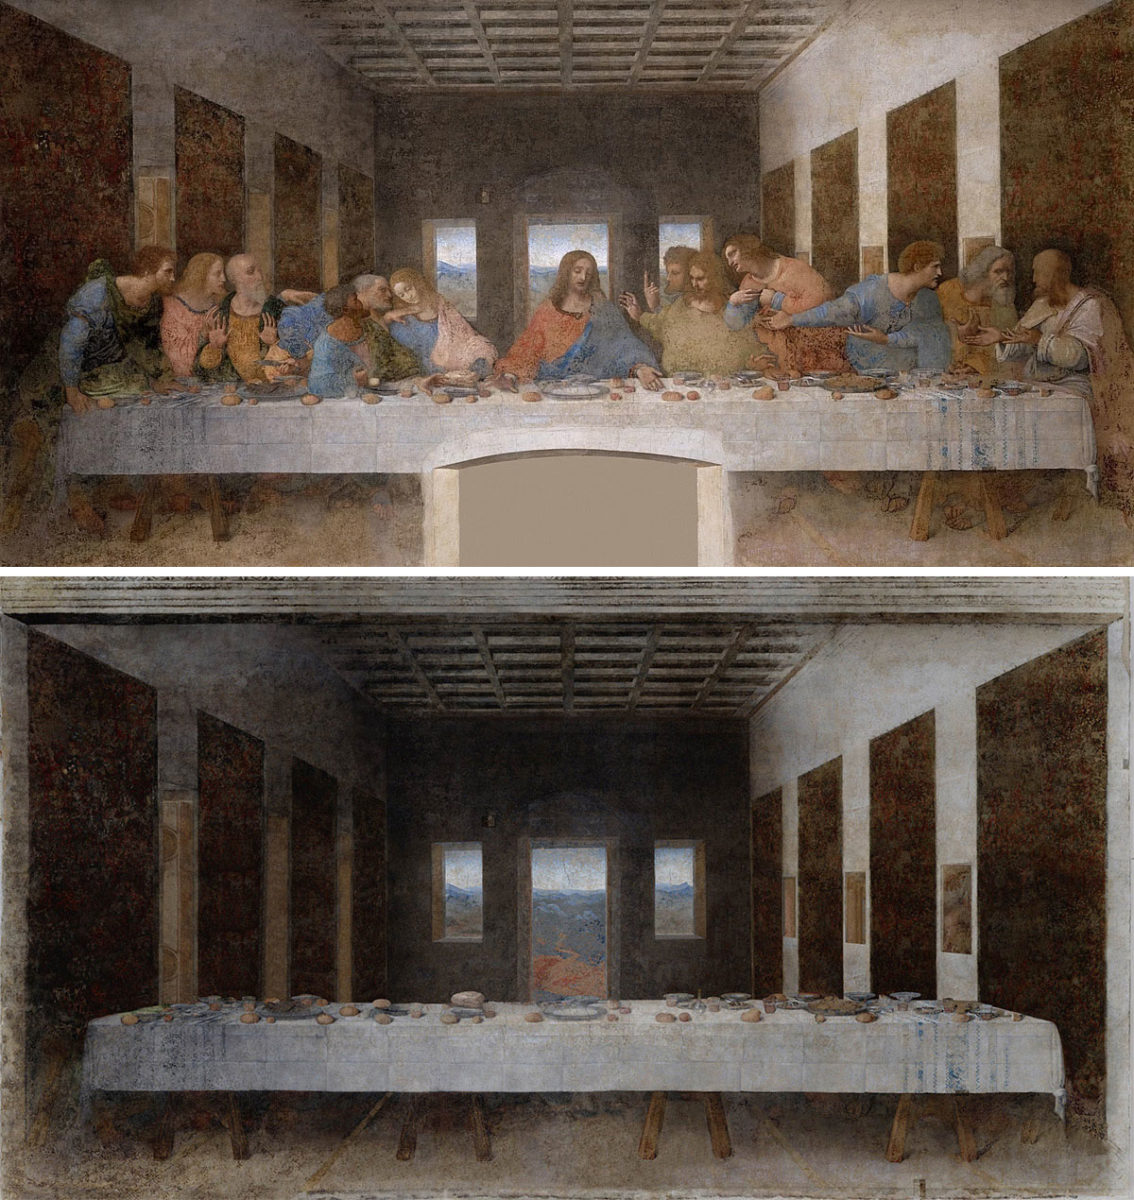 """The Last Supper"" by Leonardo Da Vinci (1498) and its counterpart by Jose Manuel Ballester (below)."